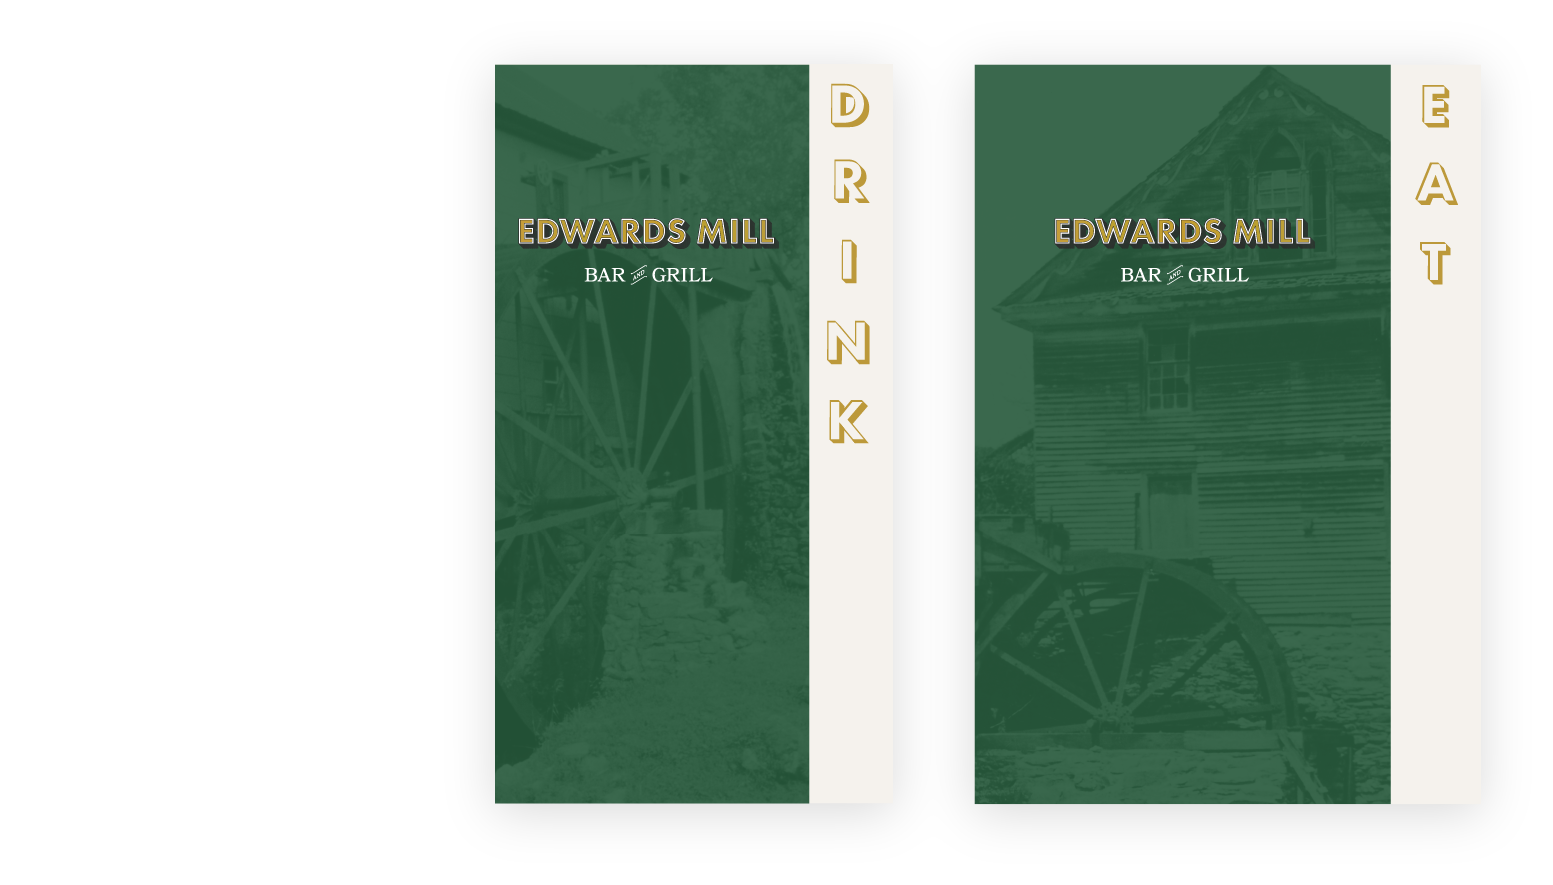 Restaurant menu print design mockups for Edwards Mill Bar and Grill